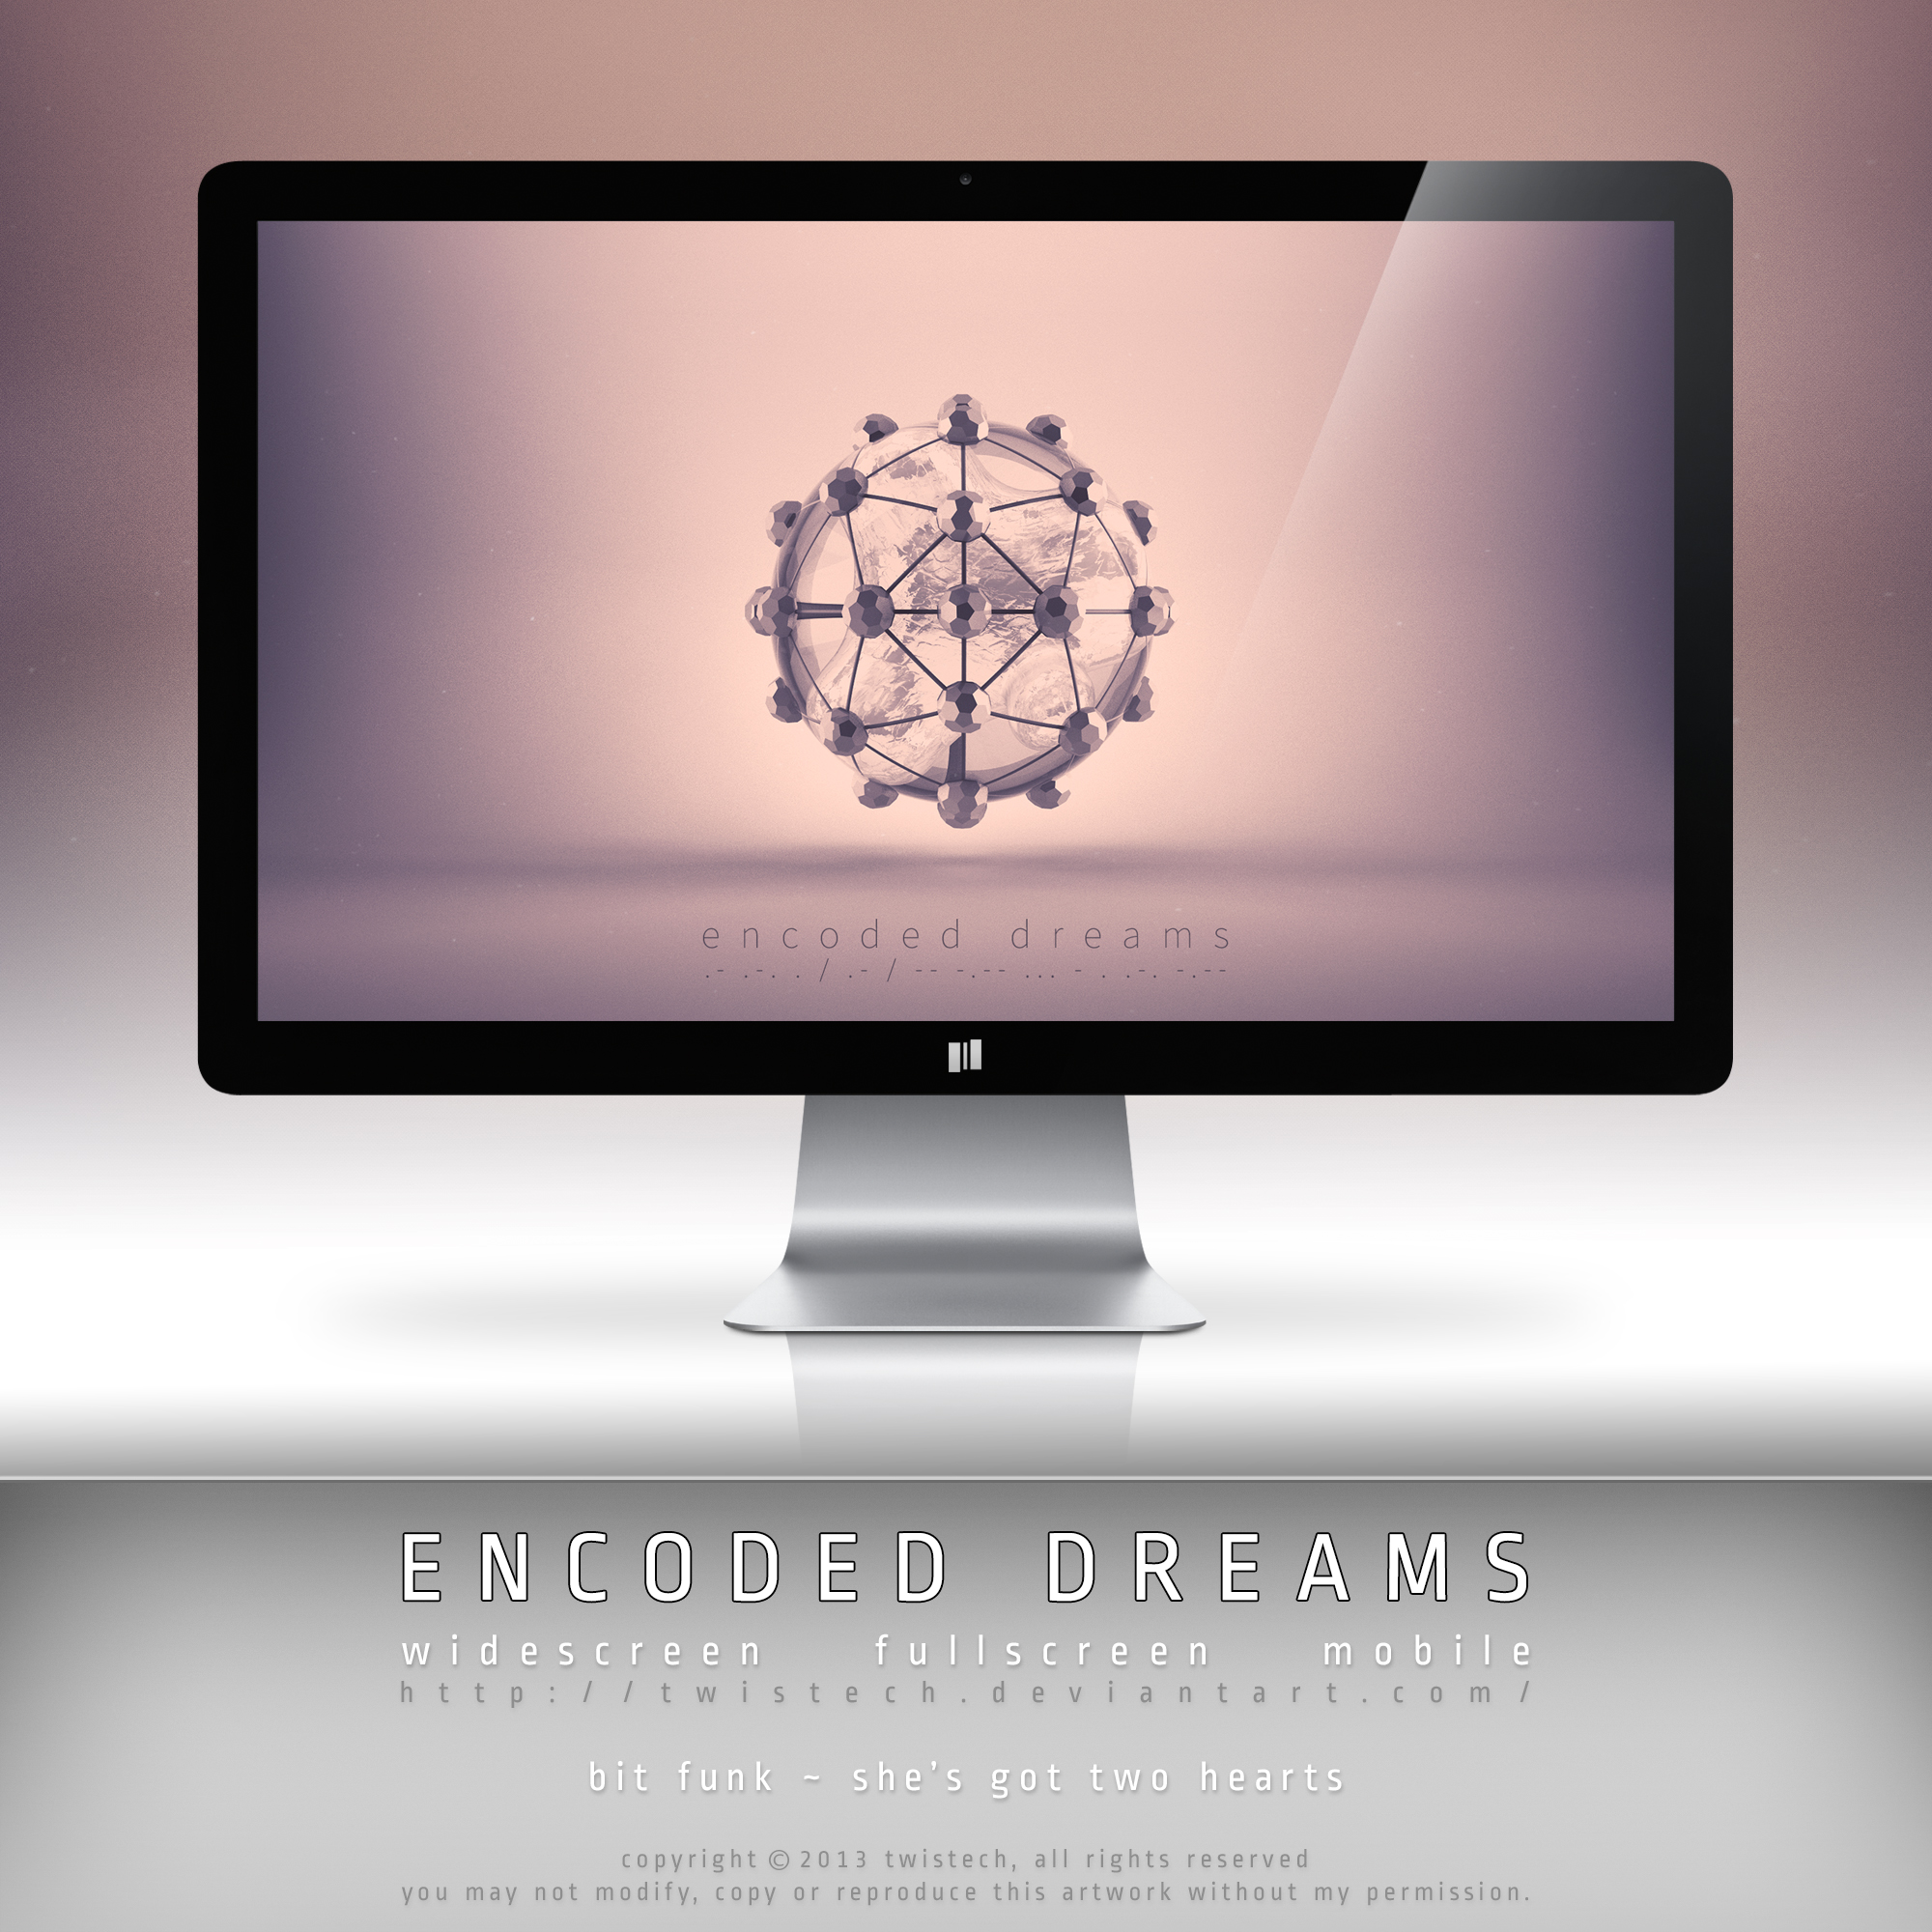 Encoded dreams by Twistech